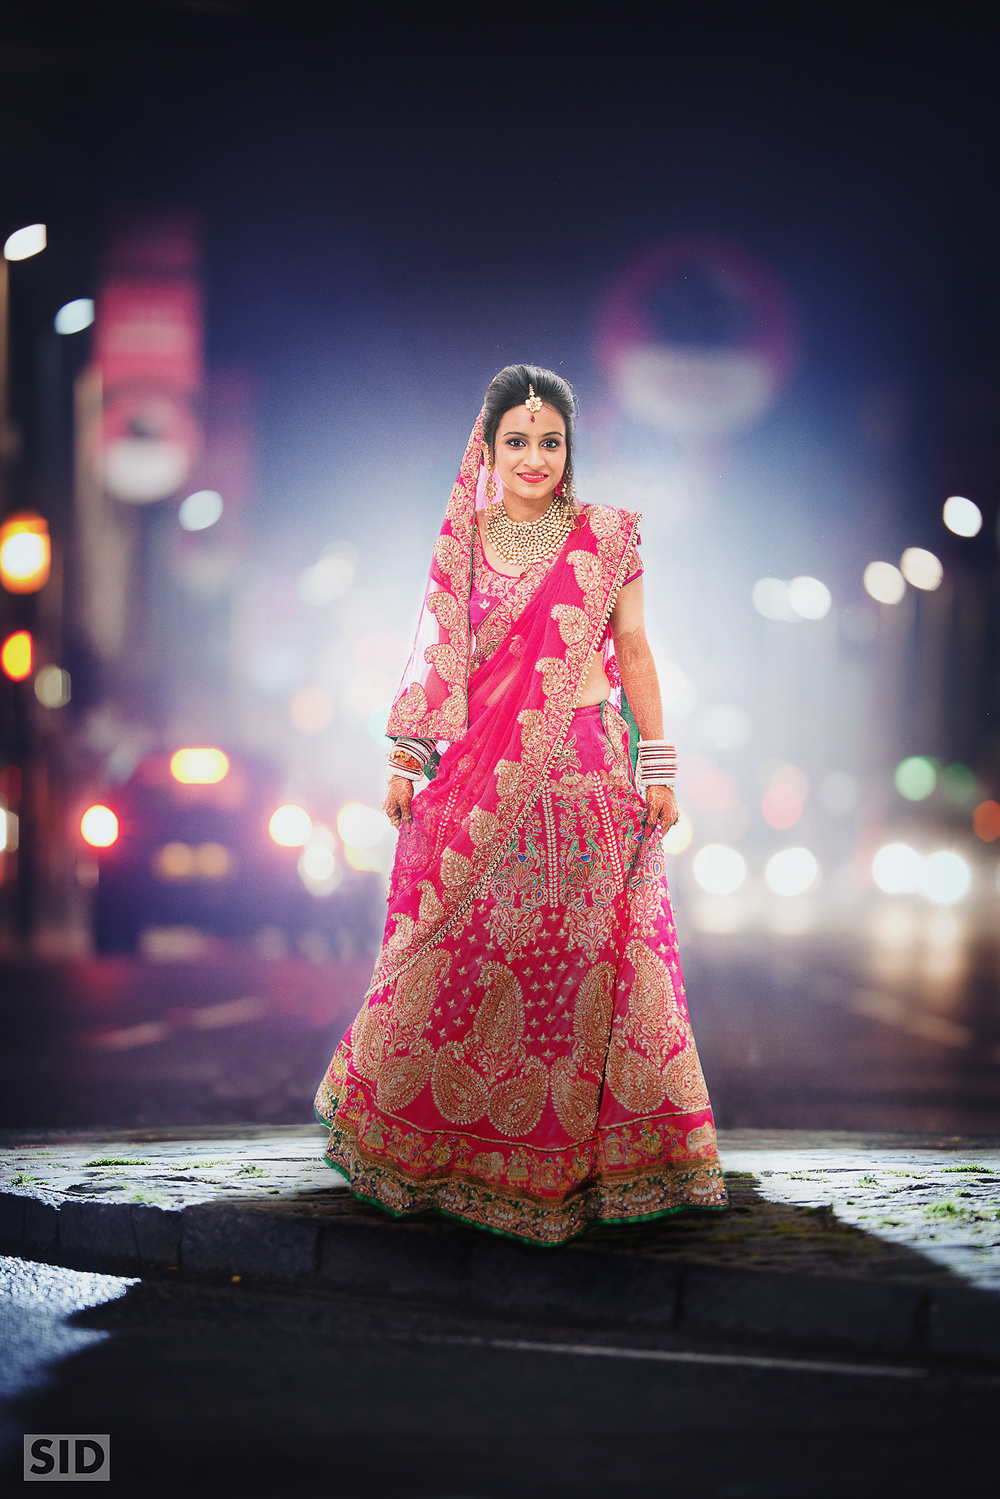 Viyoma + Gaurav : New Delhi {COMING SOON}